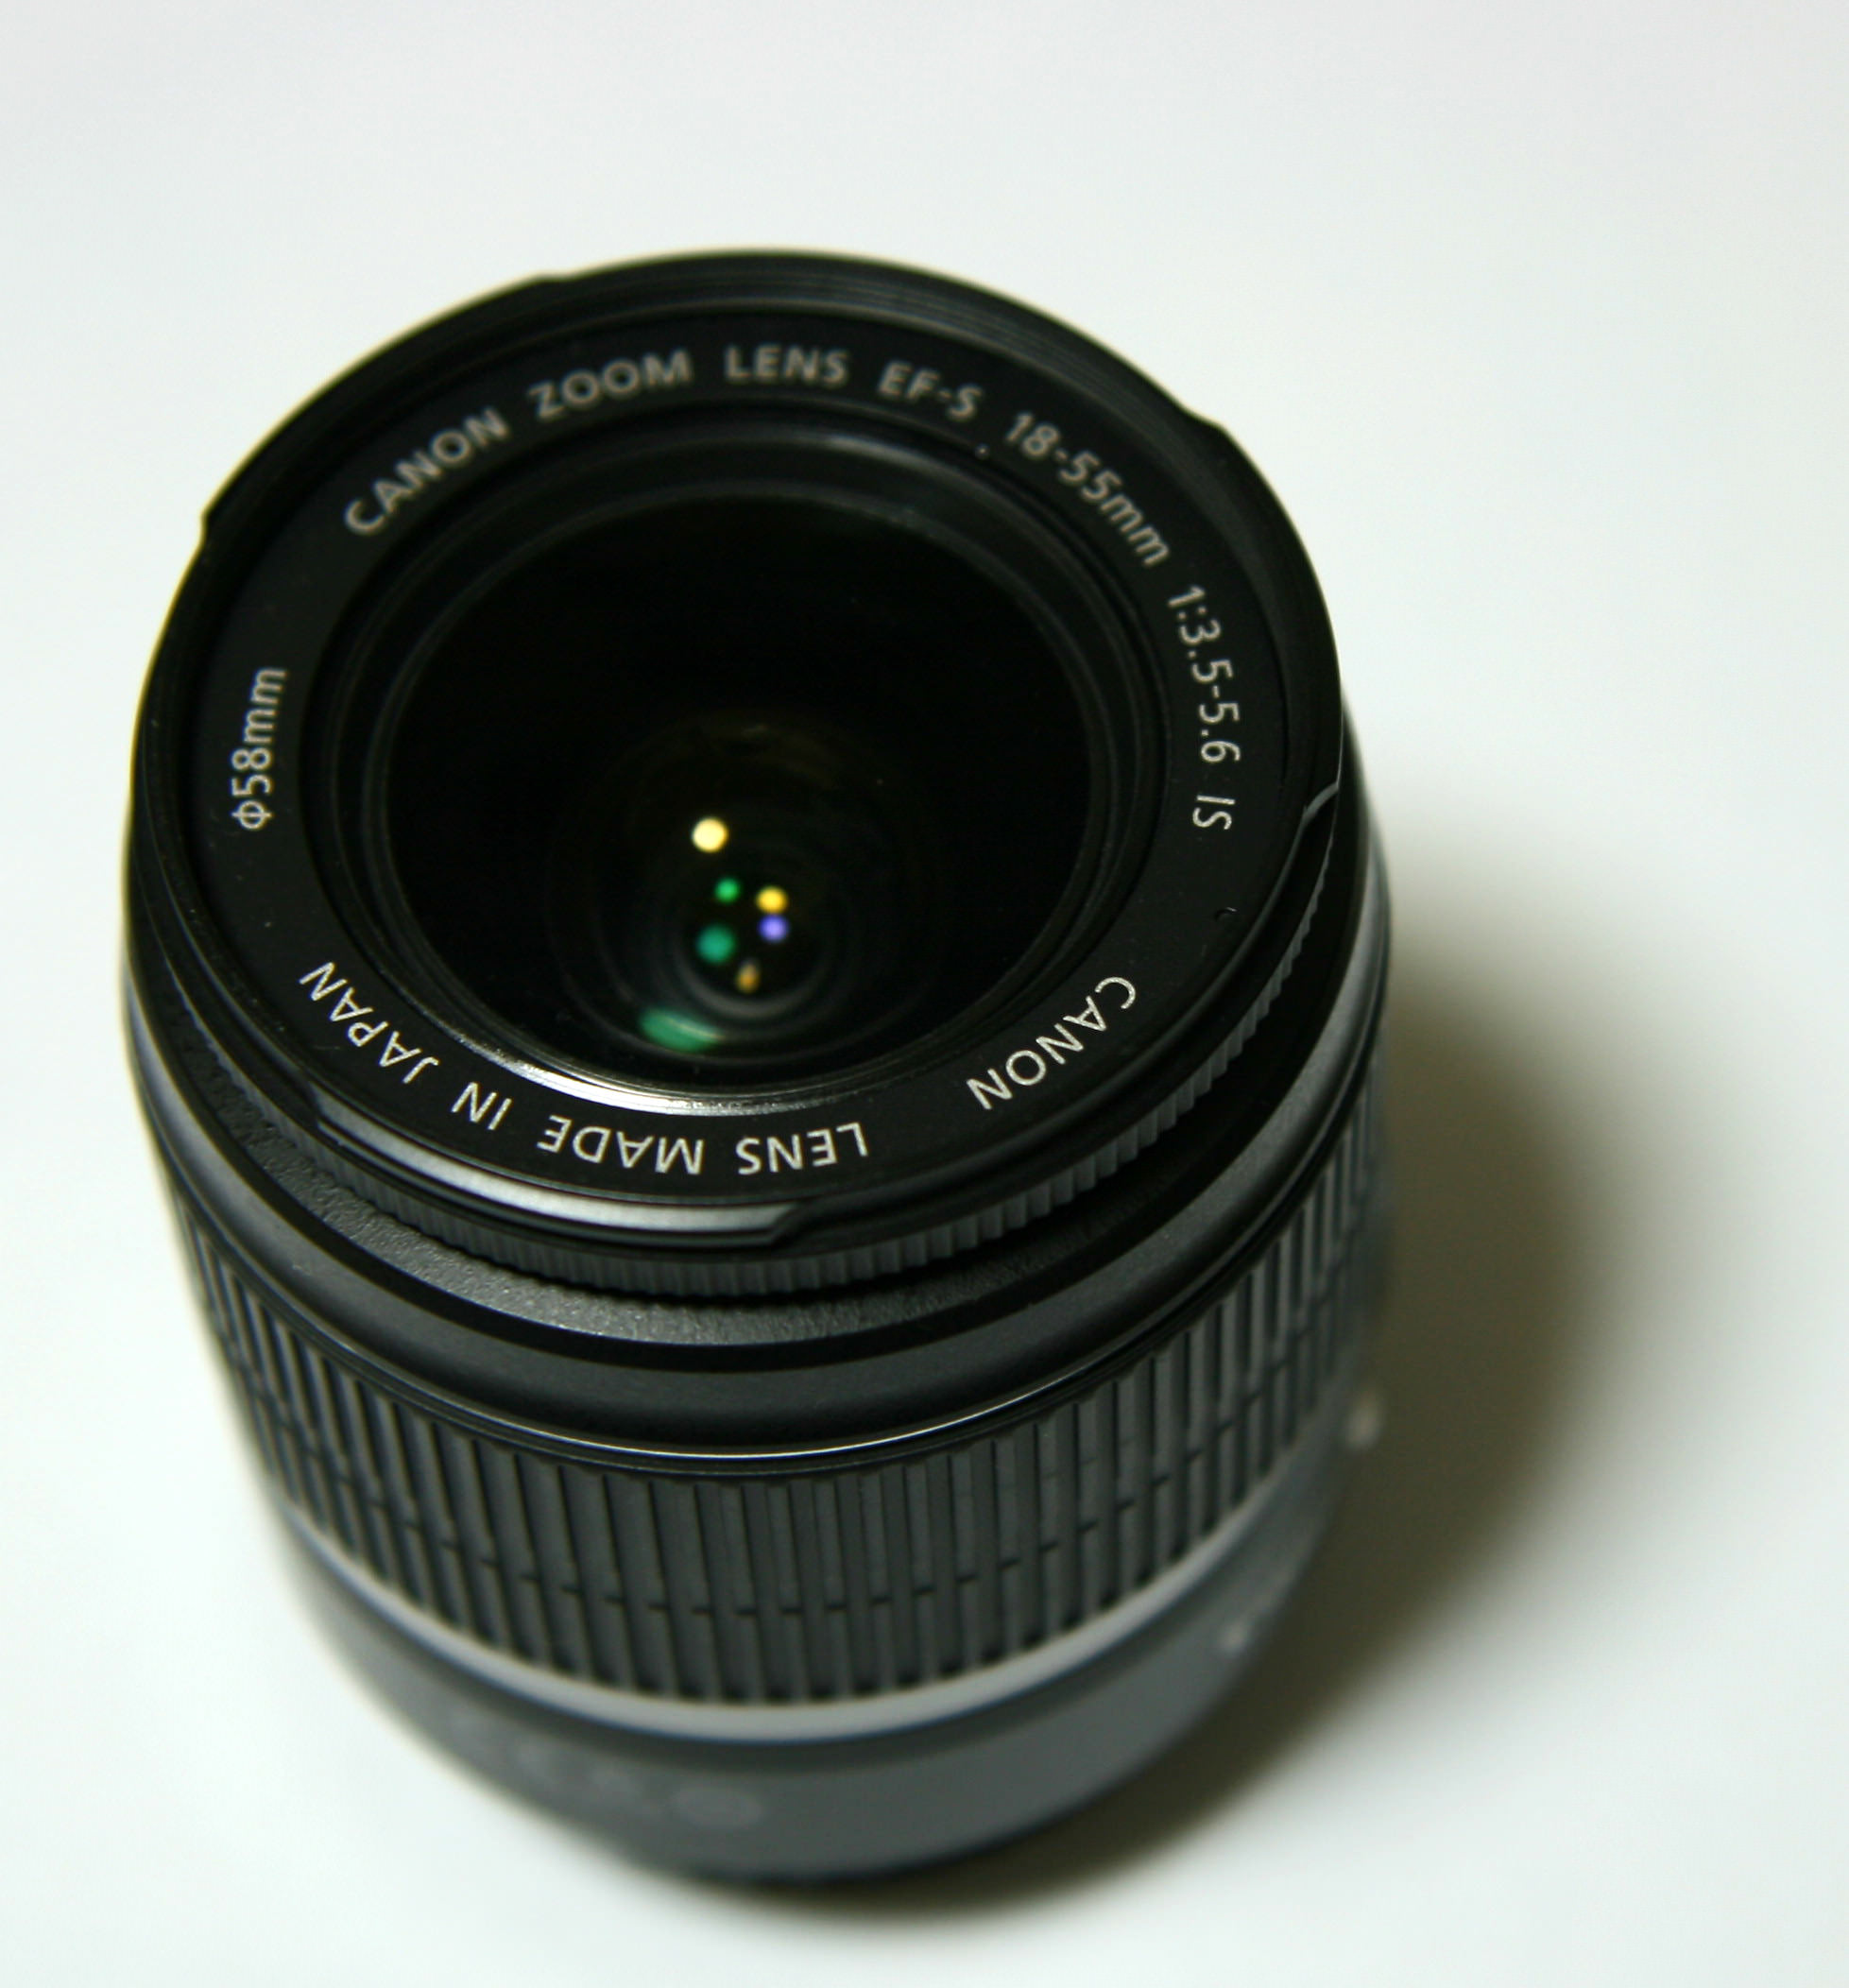 Canon EF S 18 55mm F3.5 5.6 IS lens image